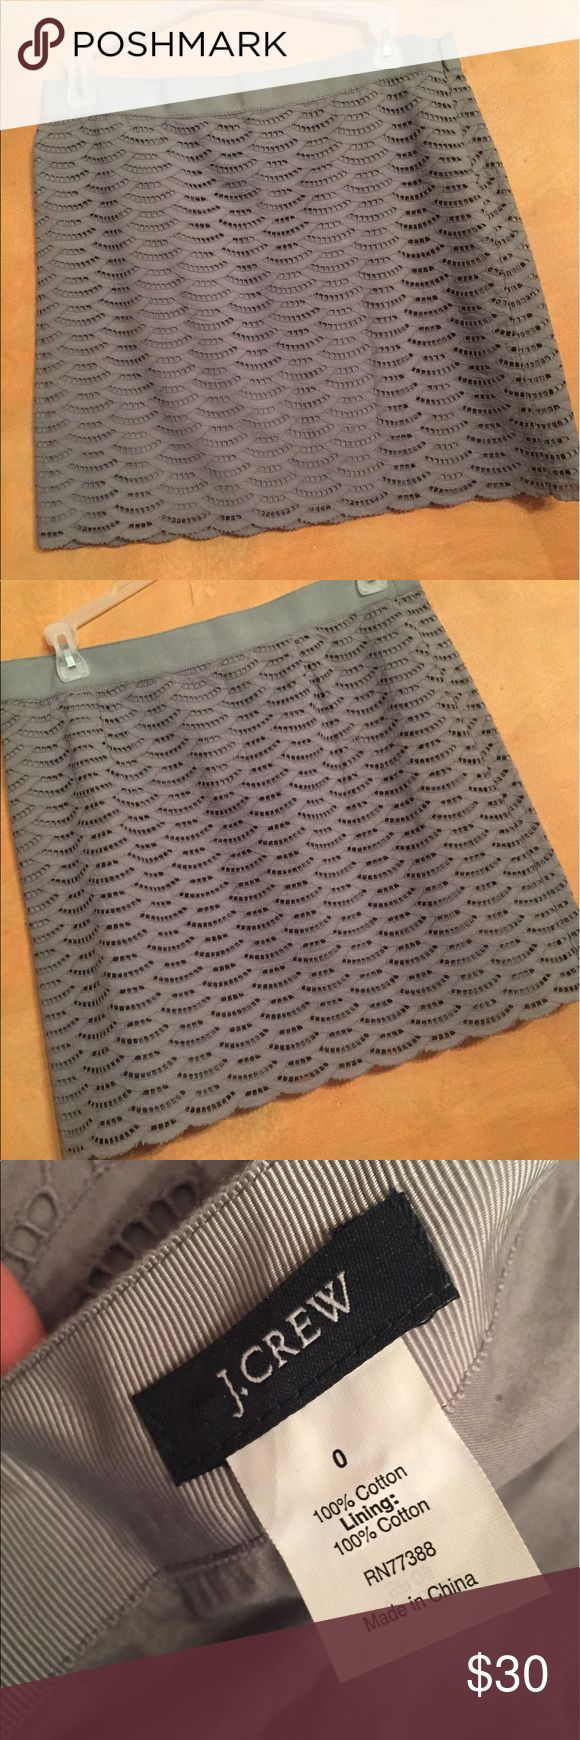 J. Crew gray eyelet short pencil skirt NWOT New, never worn. Size 0. Length 16 inches. Waist across front 14 inches. Lined. J. Crew Skirts Mini